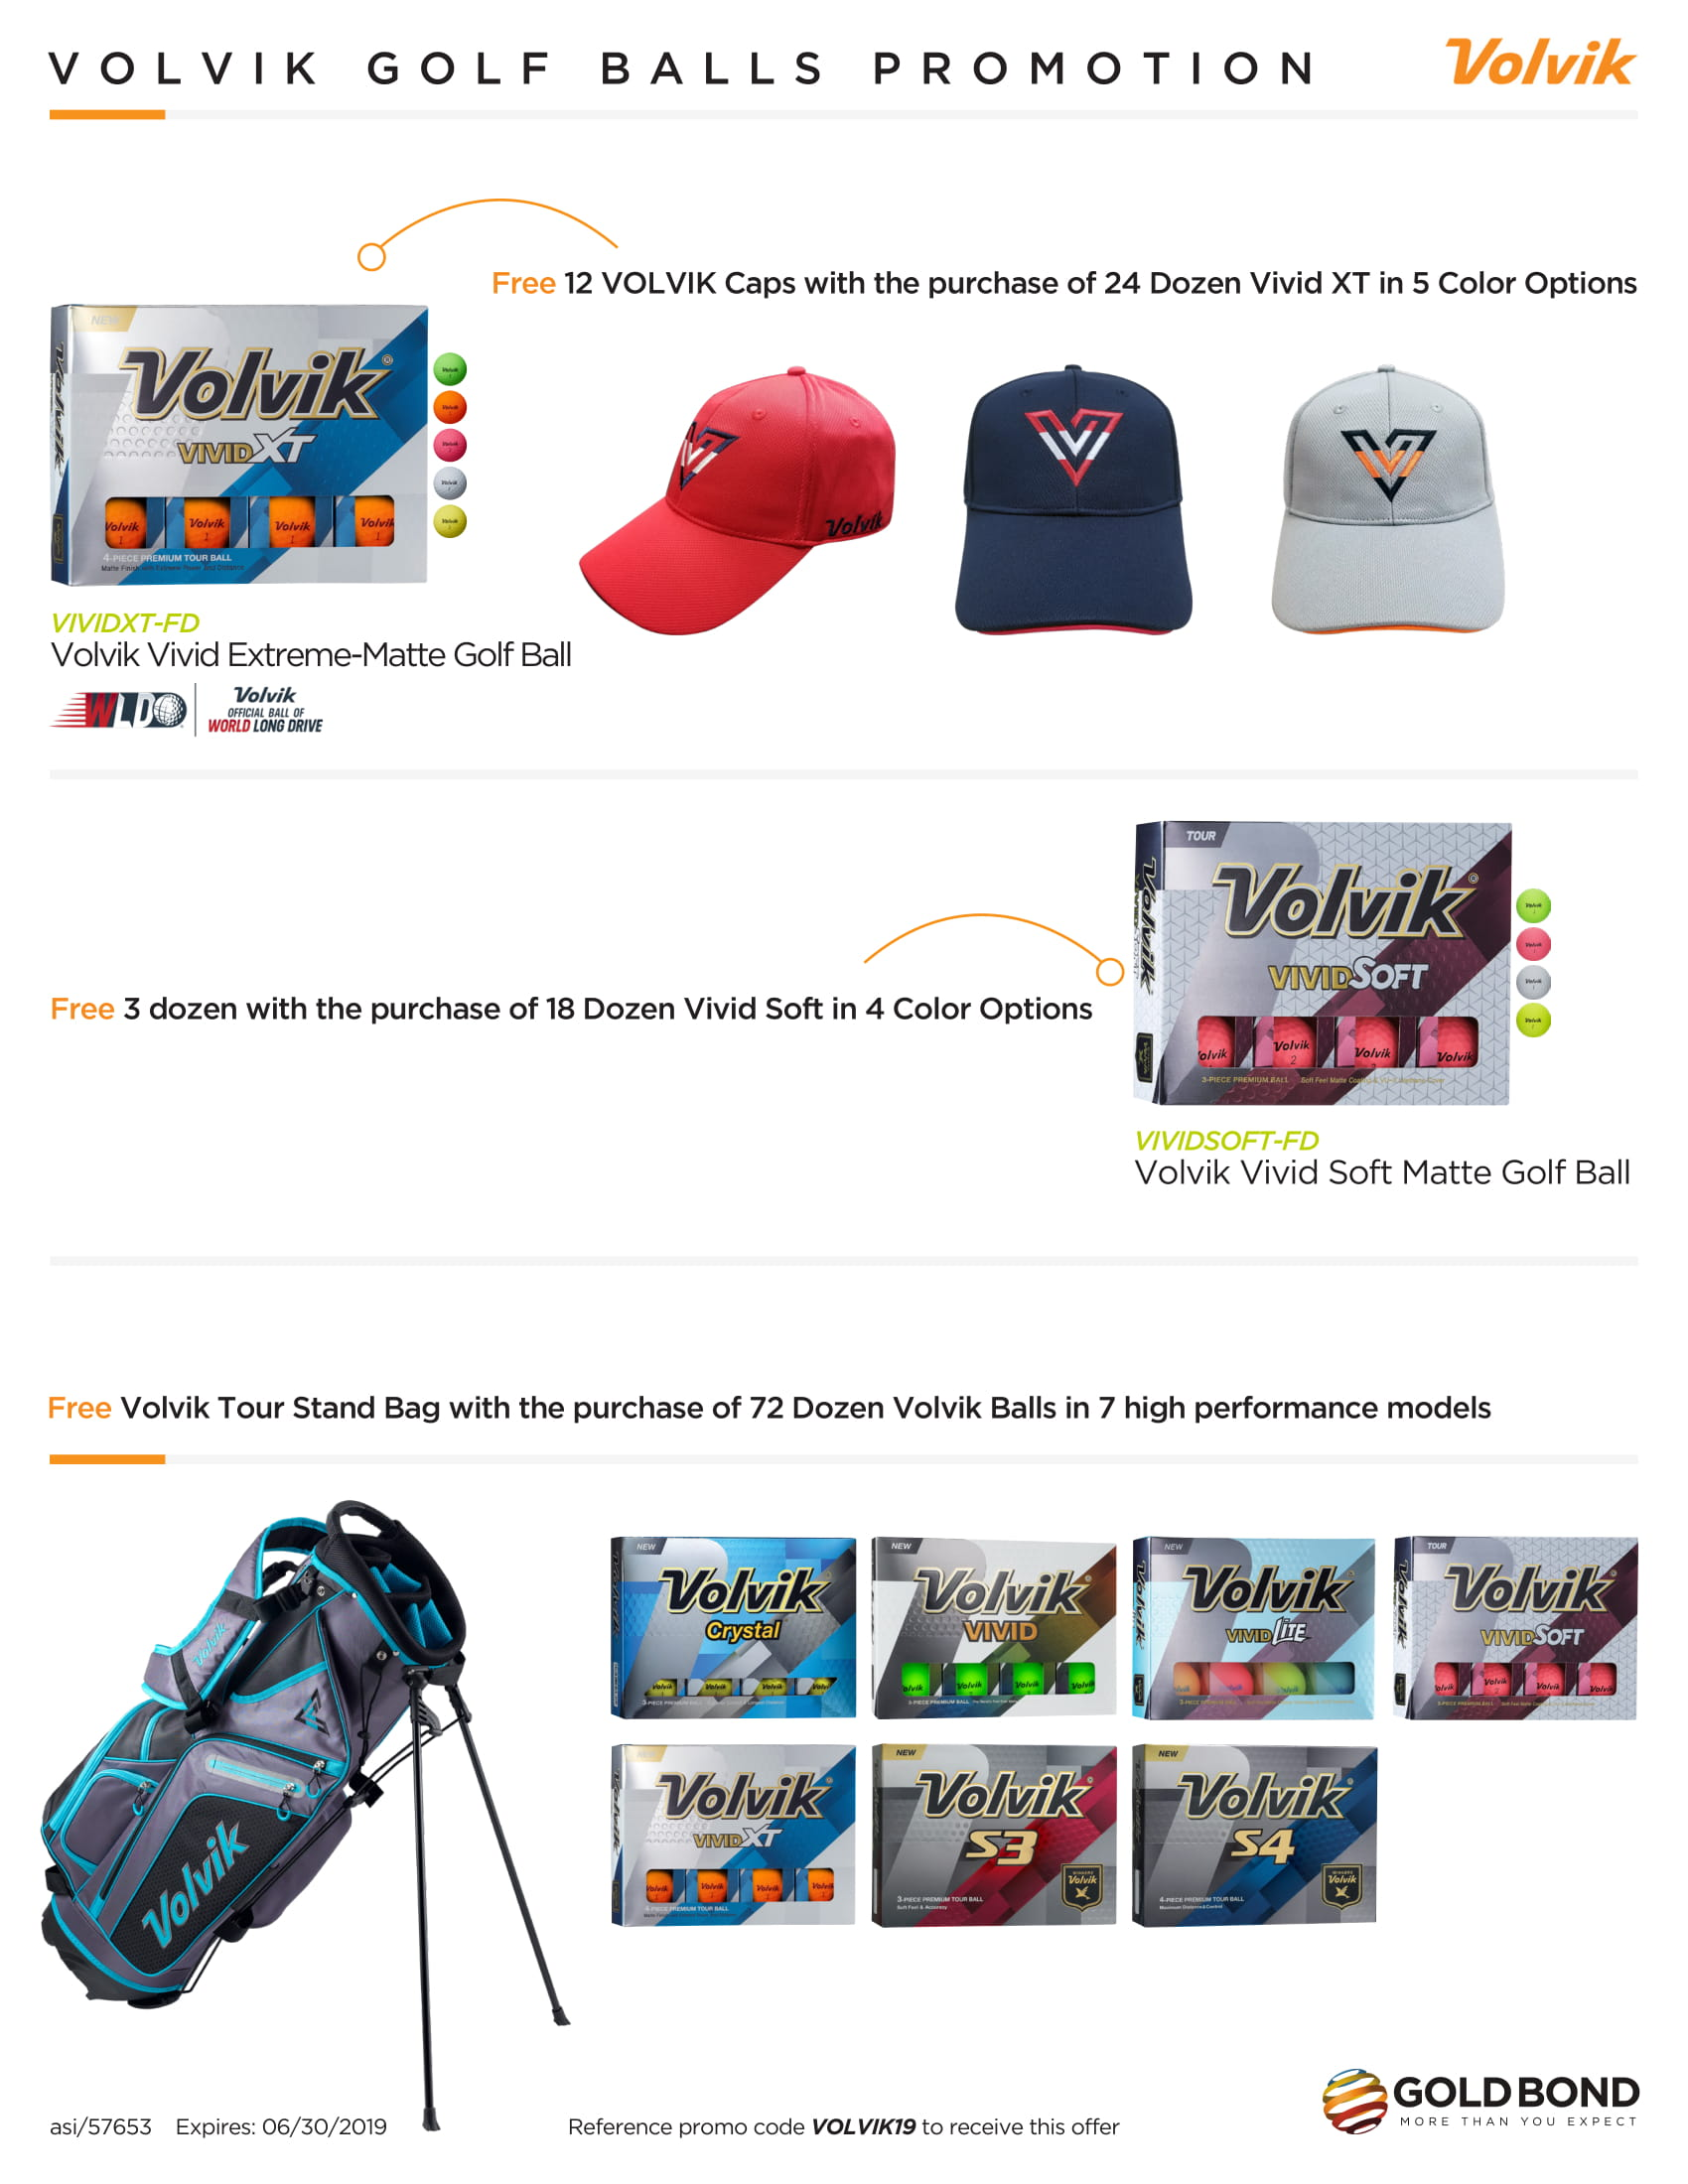 Volvik Golf Balls Promotion